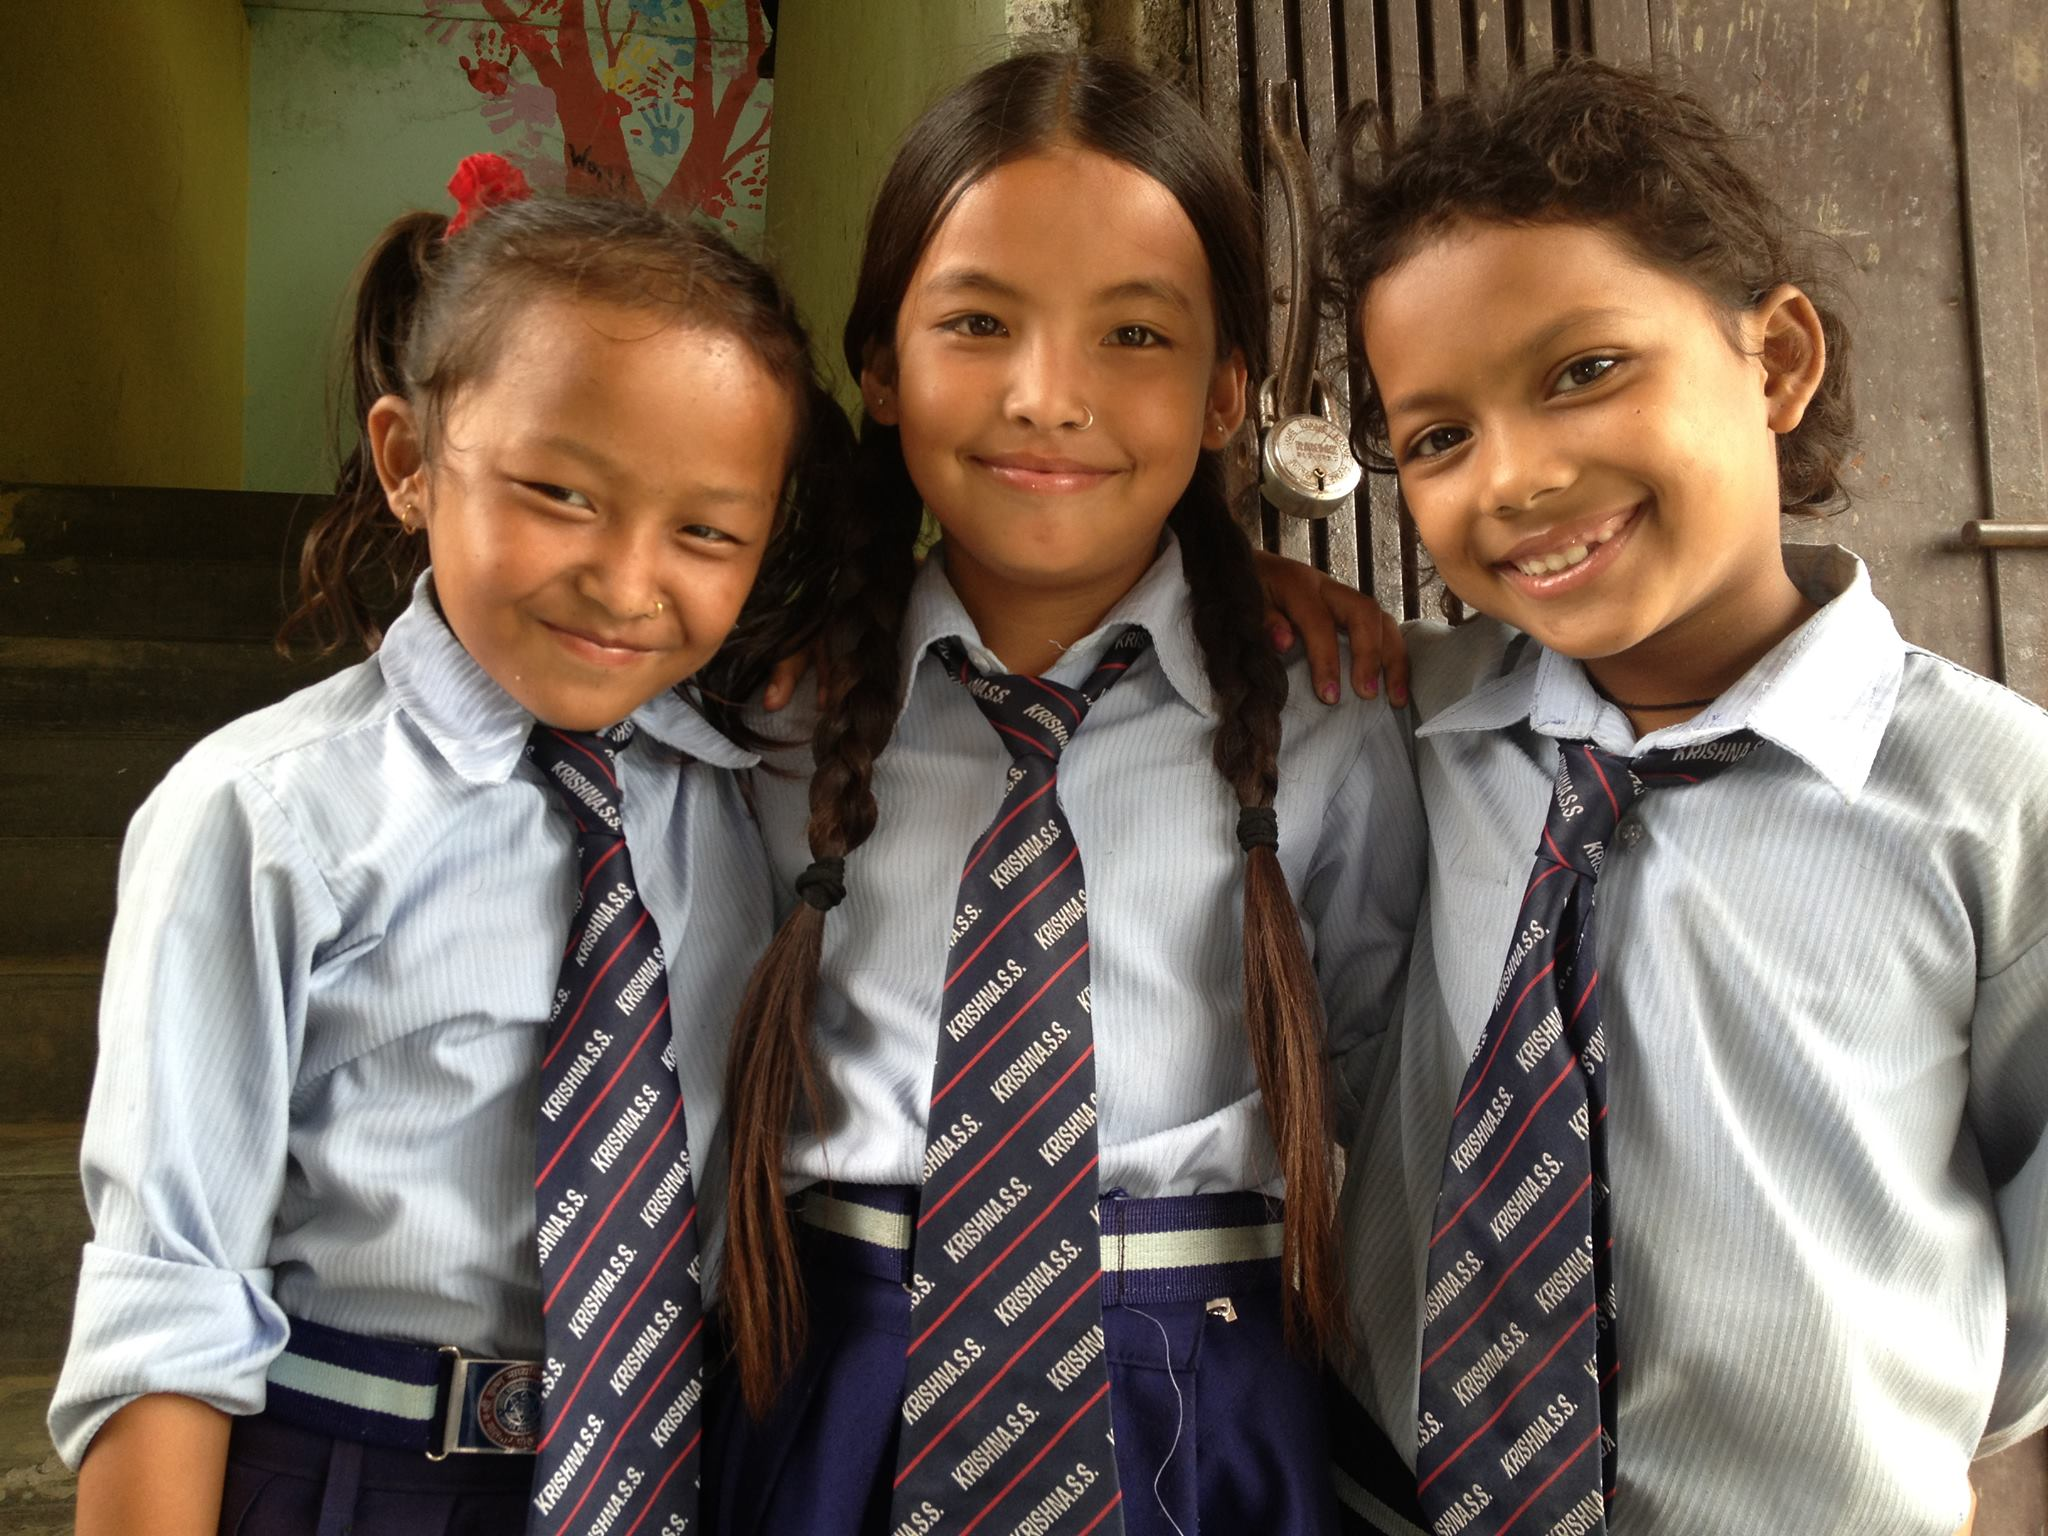 Students in Pokhara, Nepal